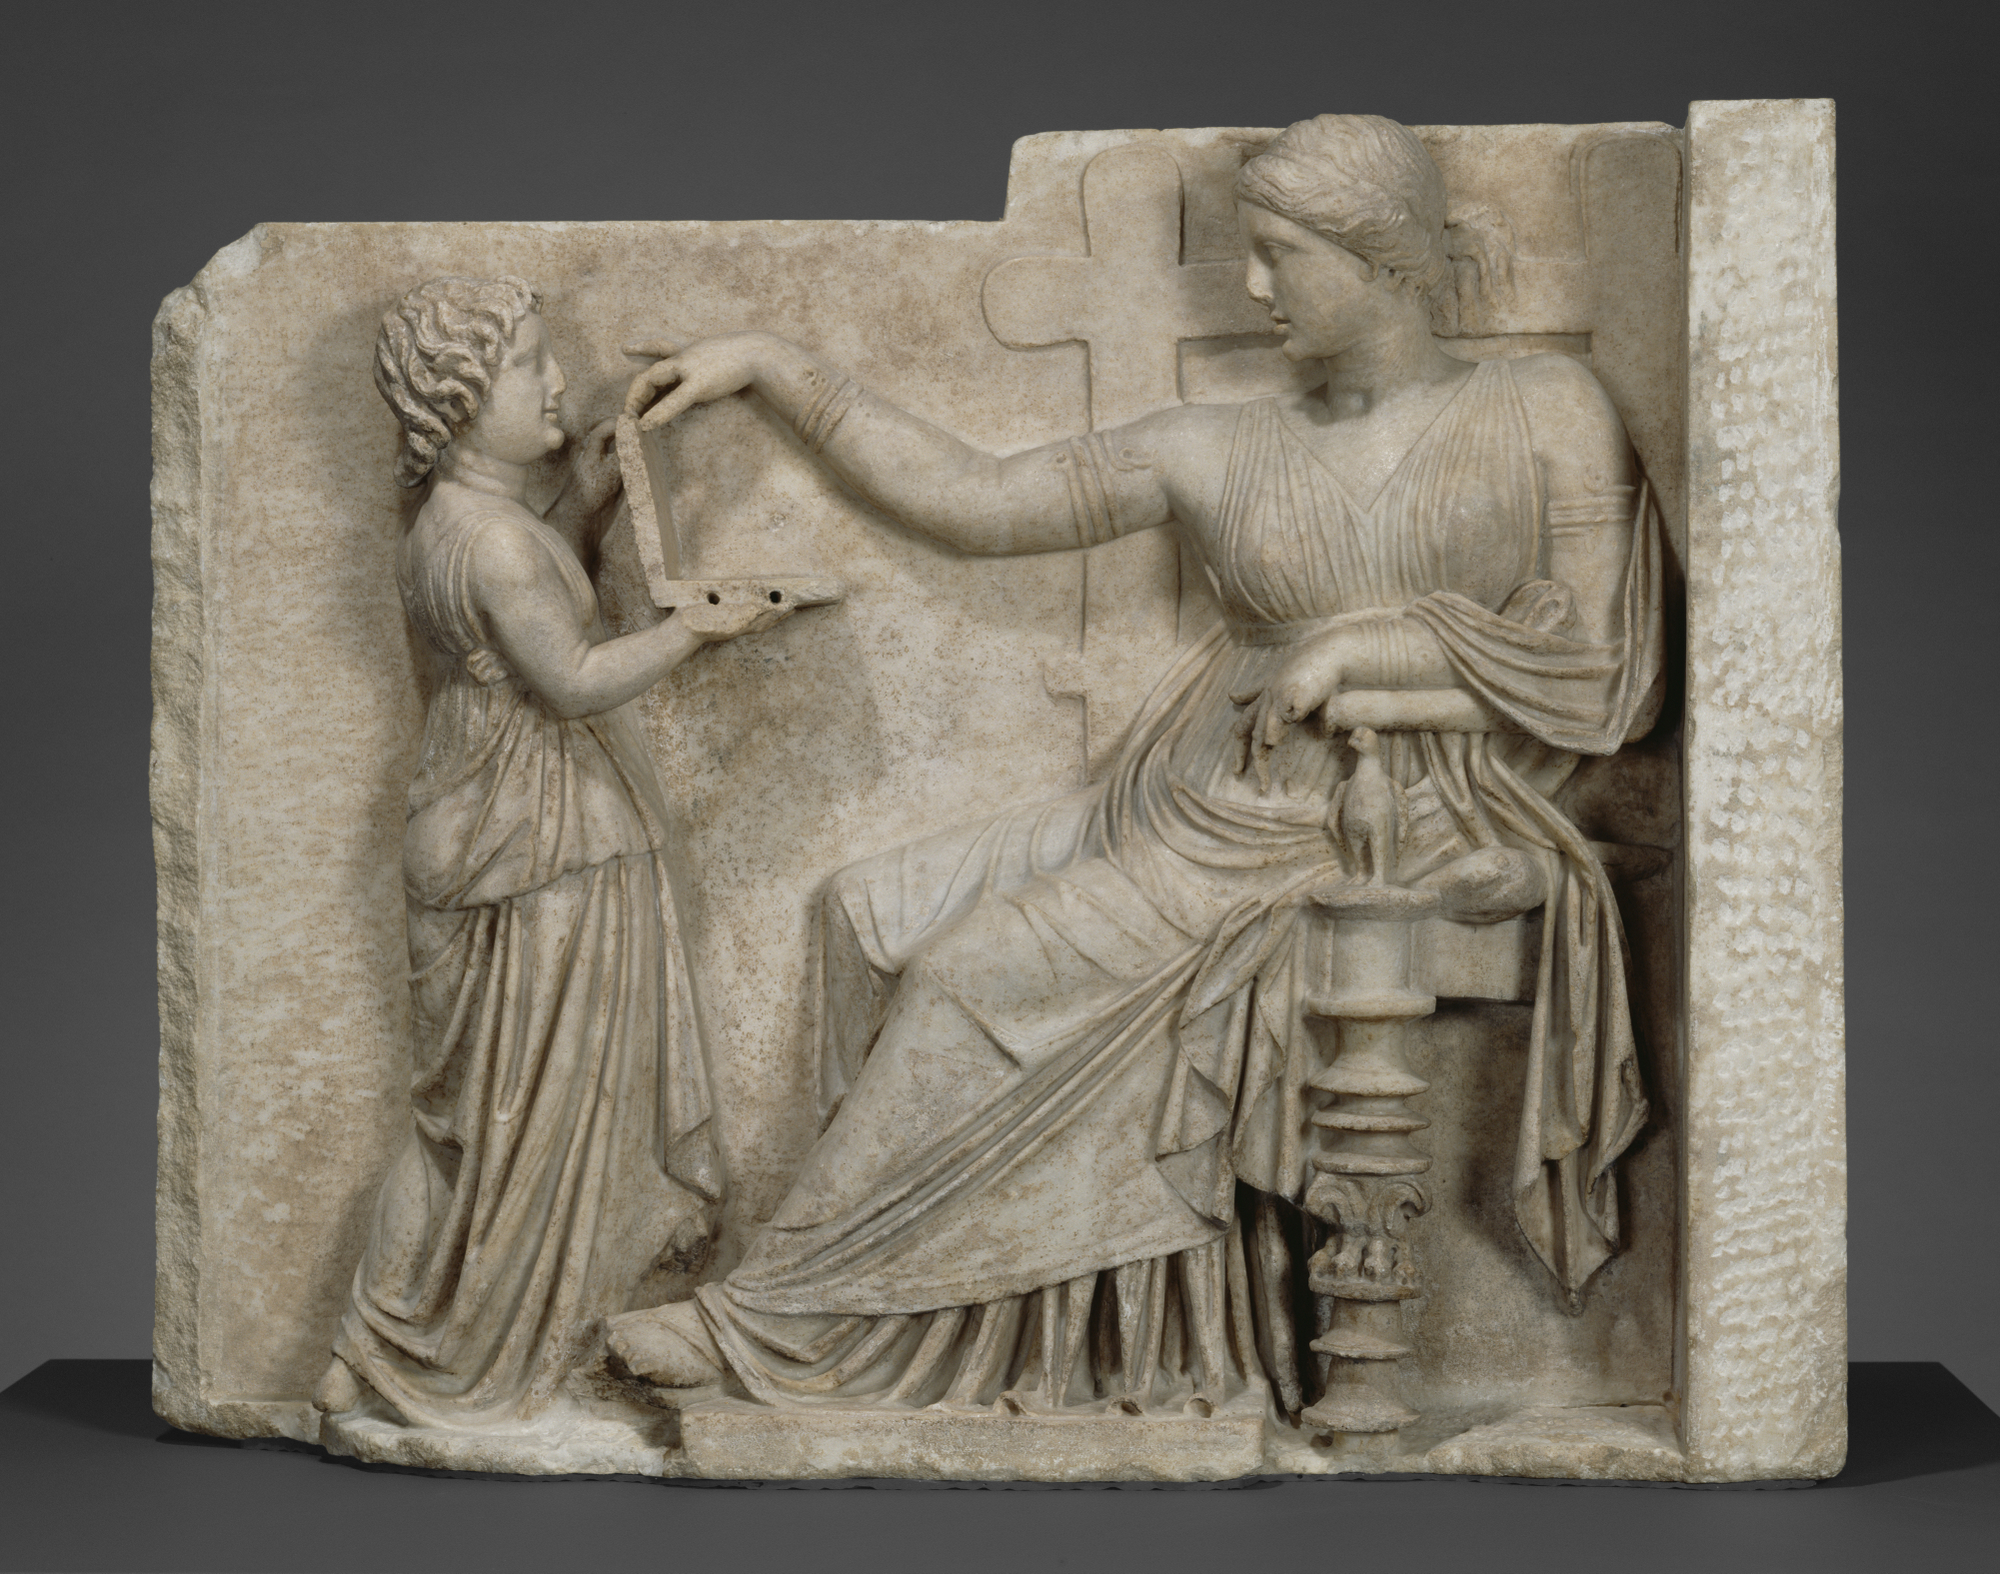 <p>This relief is an ancient Greek gravestone.</p>